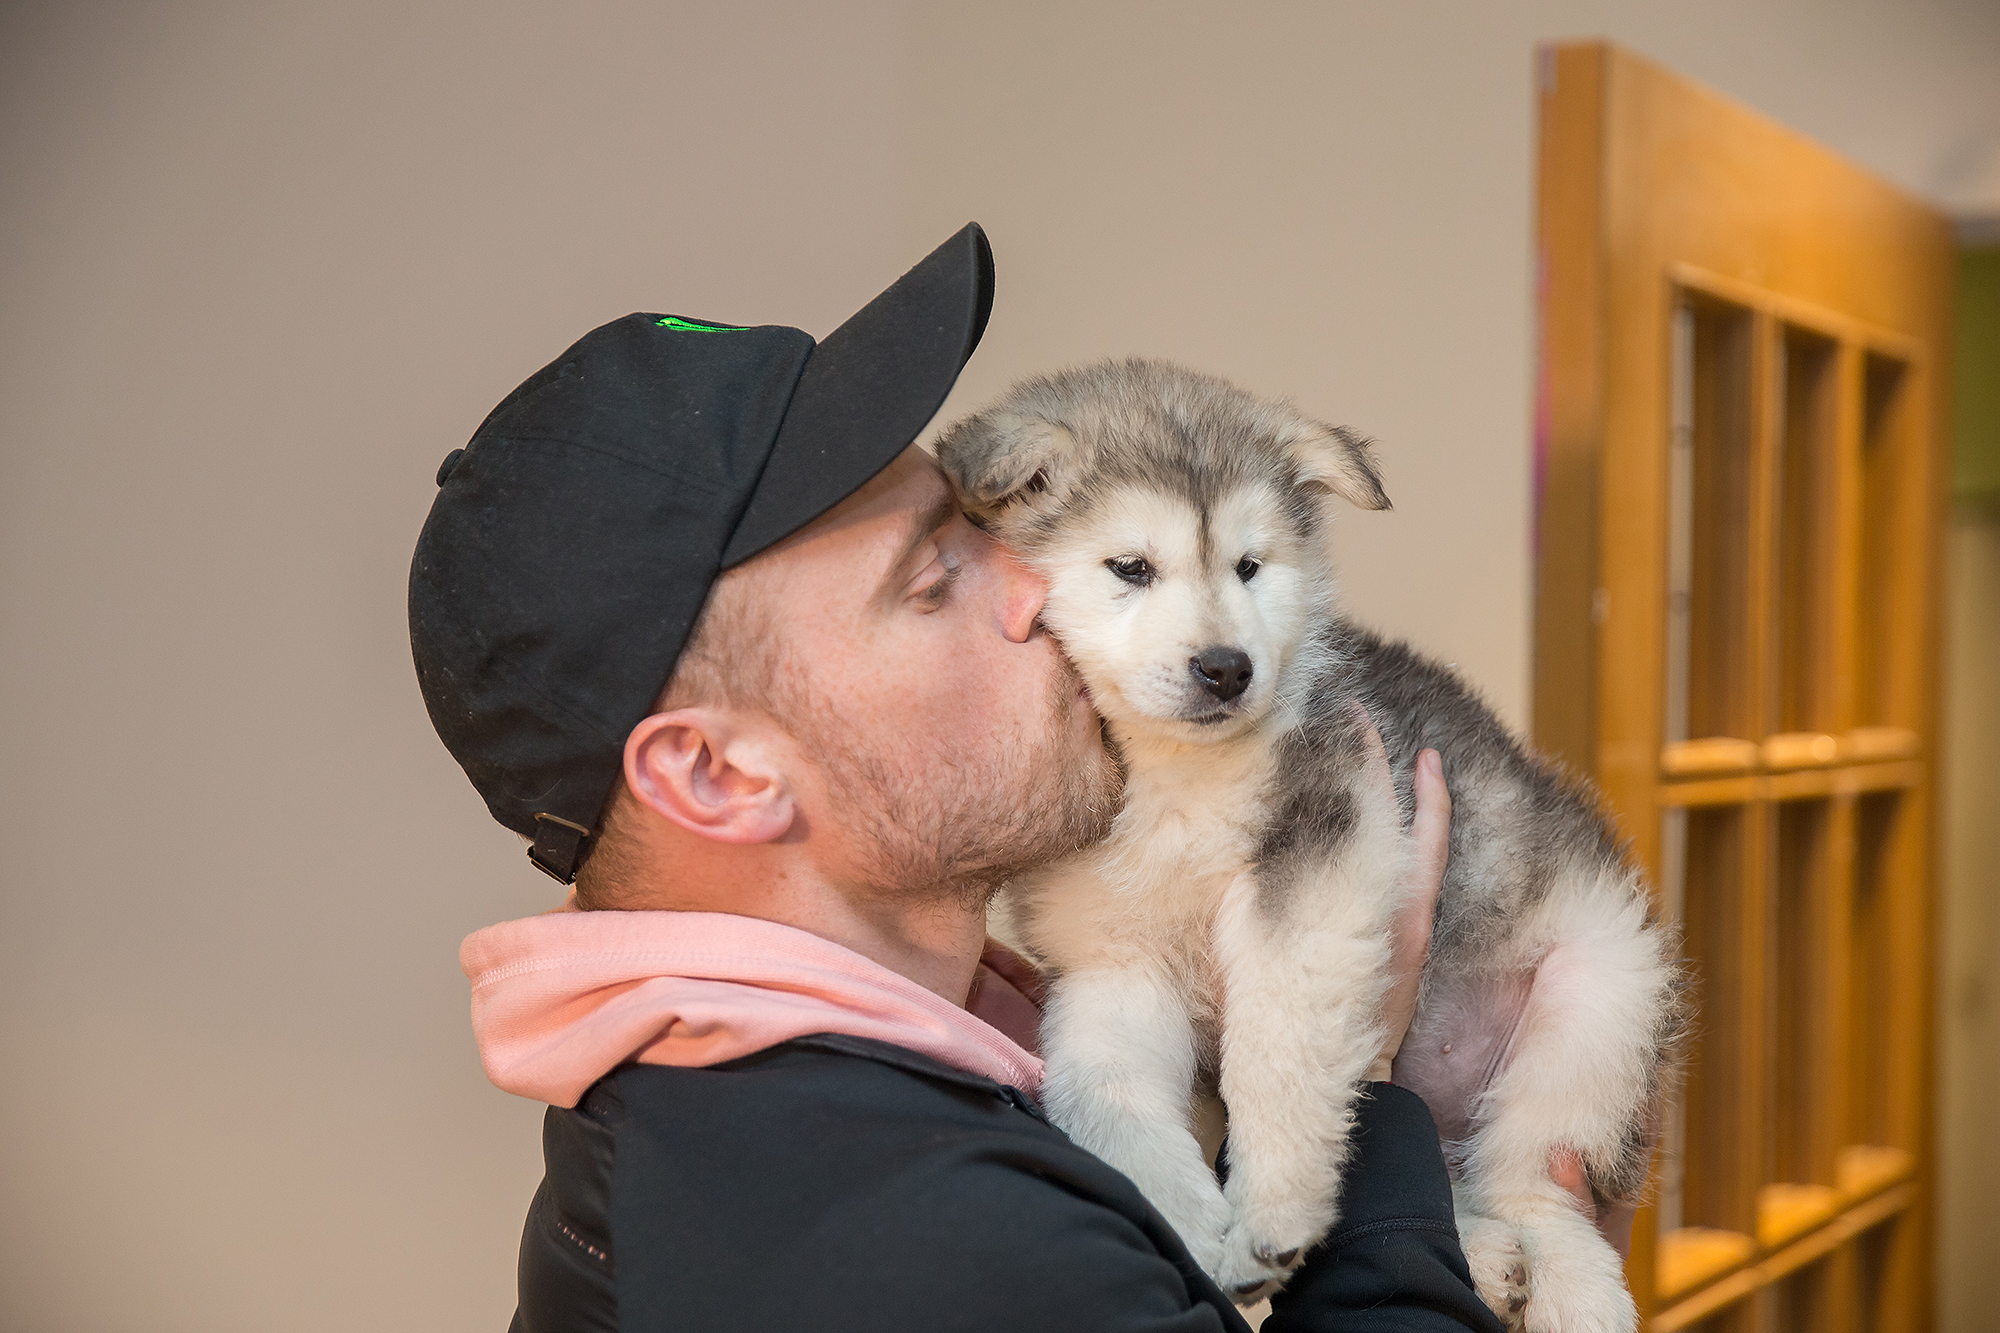 Gus Kenworthy and Beemo reunion